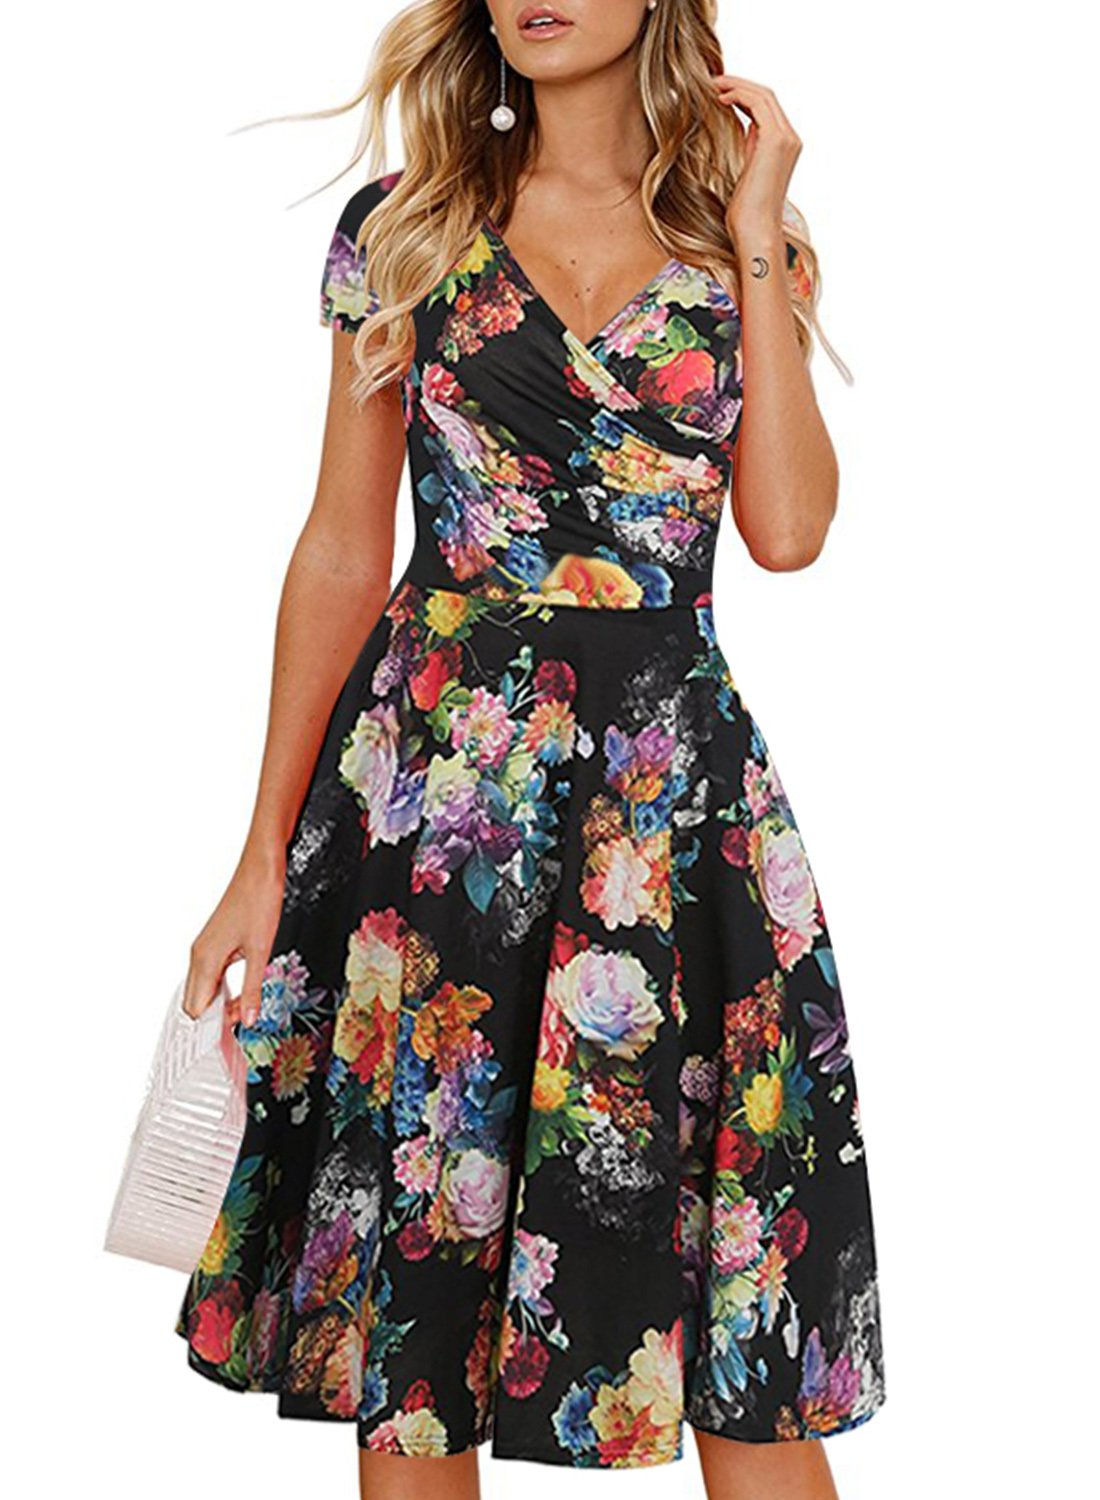 Ranphee Women Floral Casual Work Dresses V-Neck Cap Sleeve Knee Length Cotton Dress